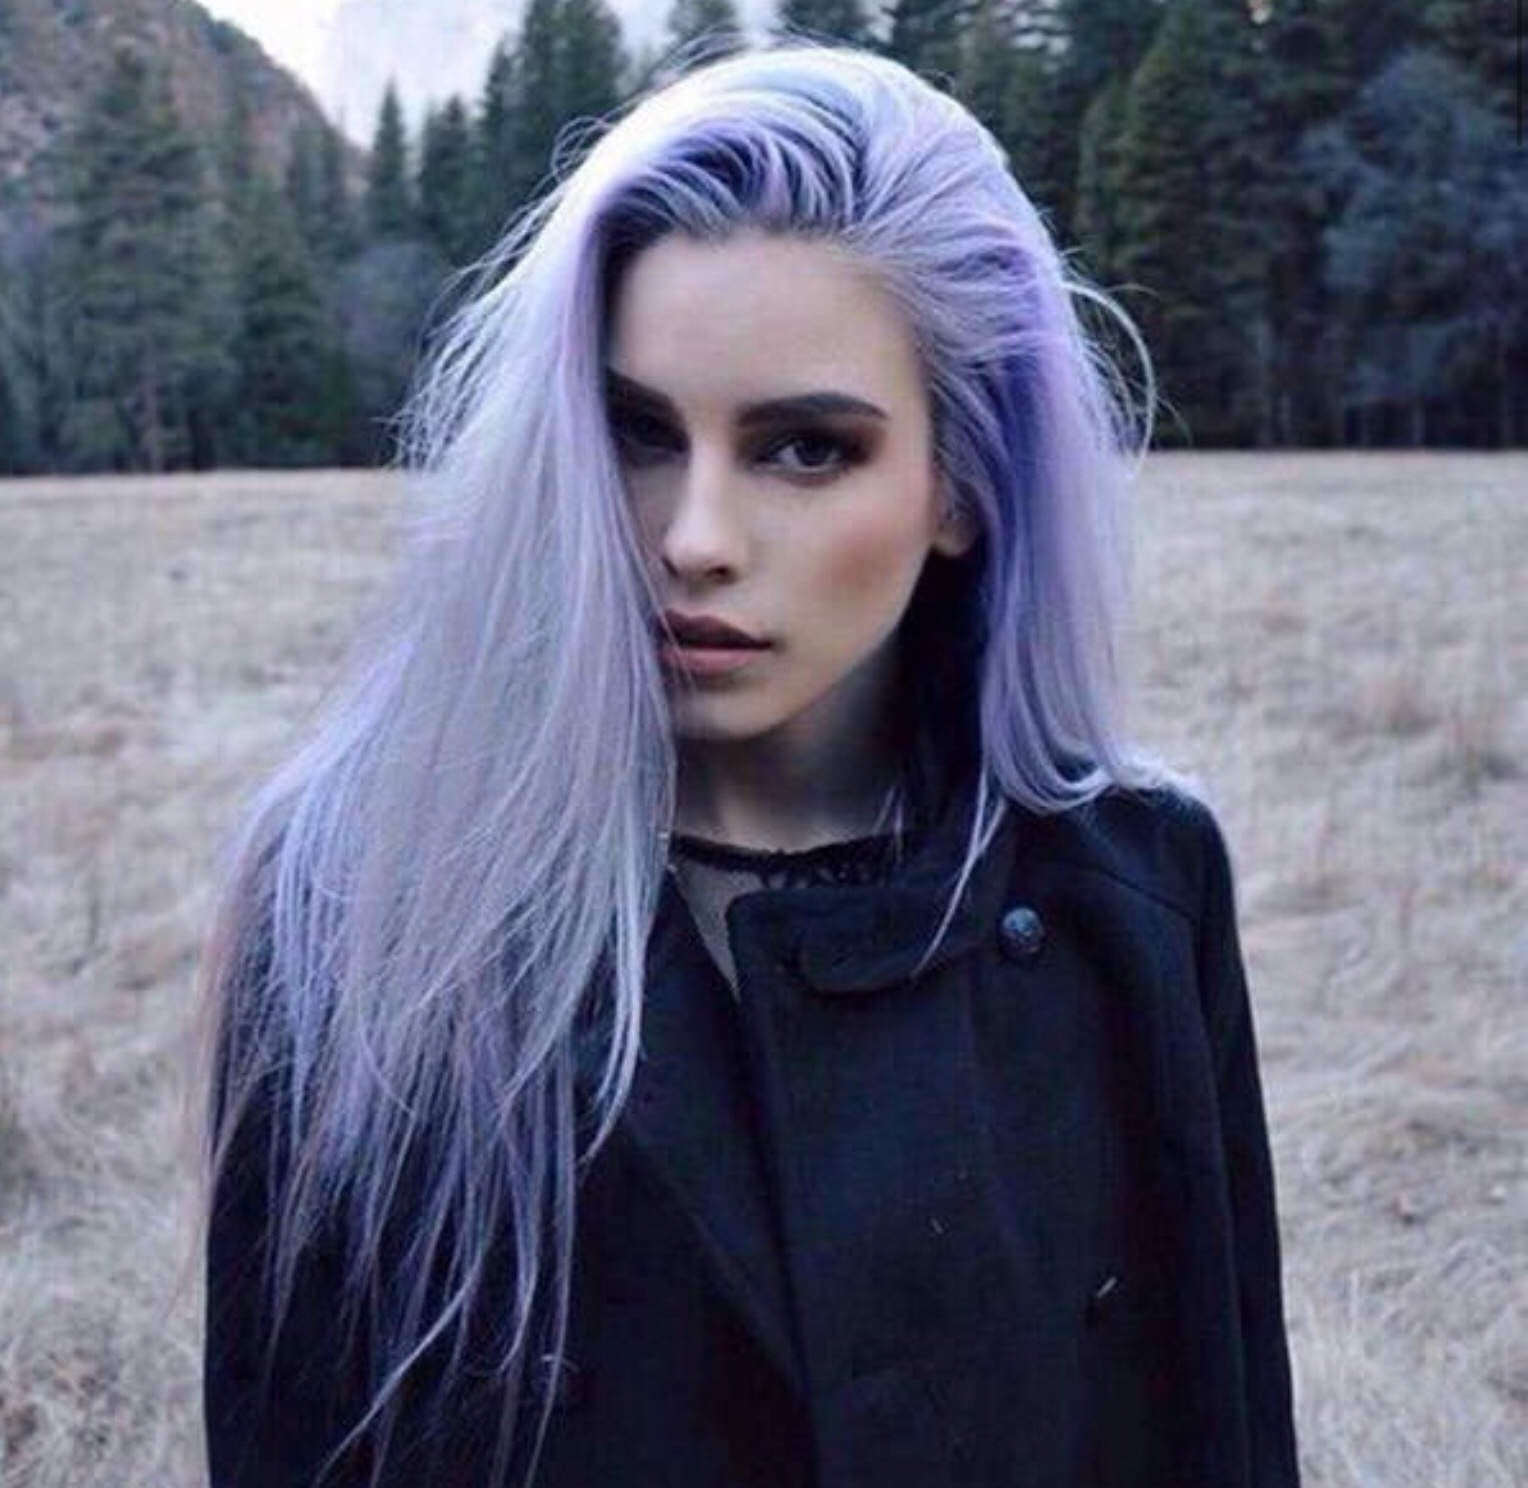 woman stood in a field with ice blue hair.